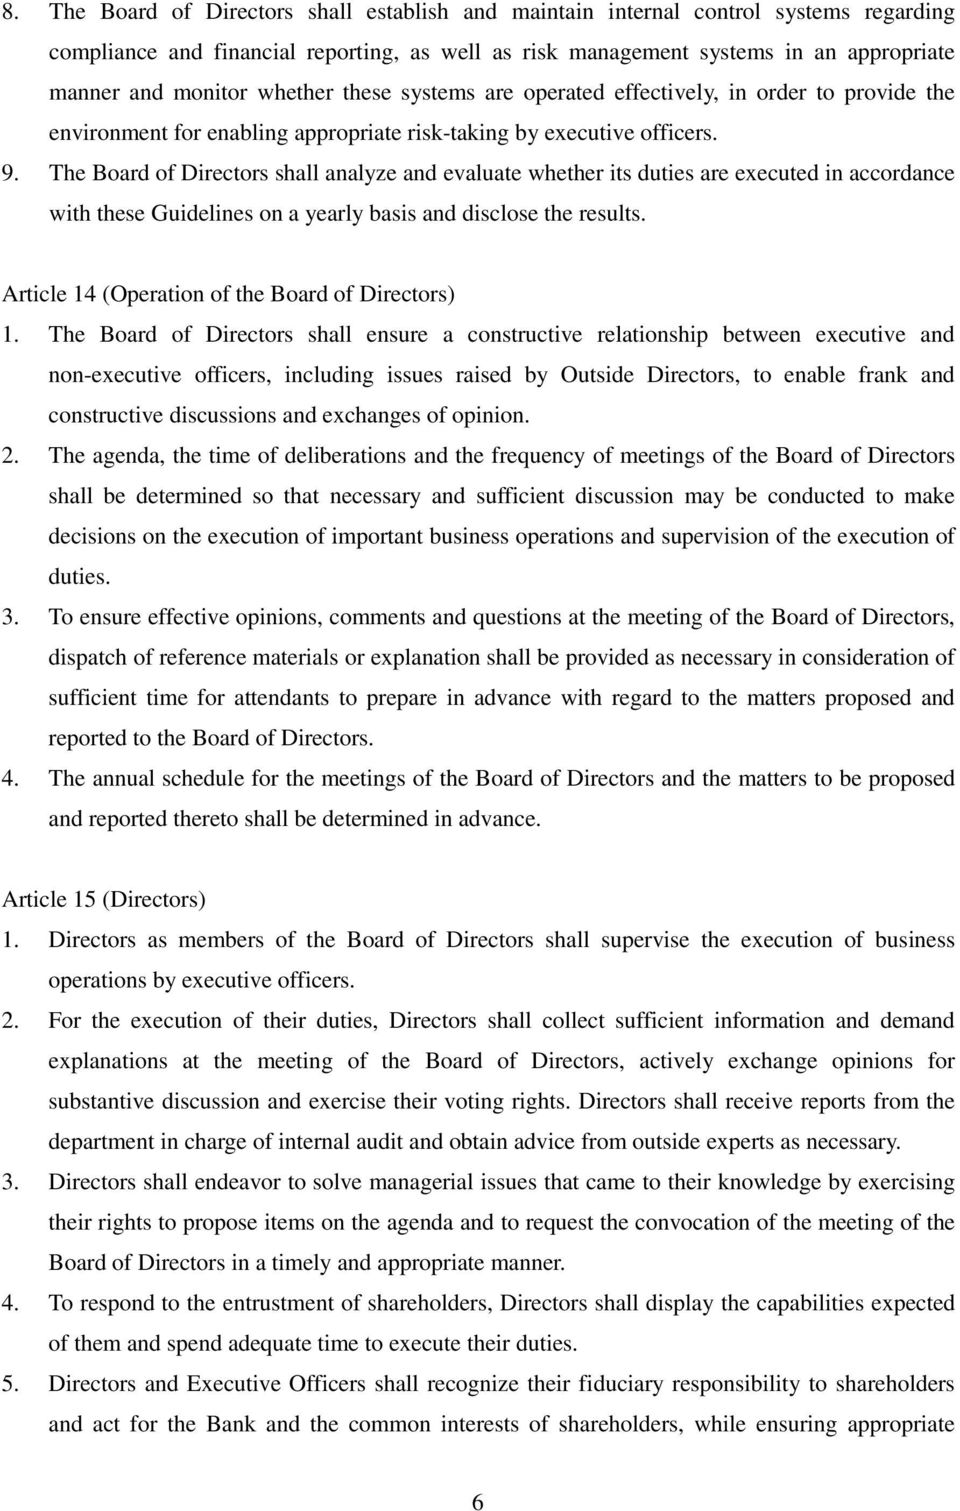 The Board of Directors shall analyze and evaluate whether its duties are executed in accordance with these Guidelines on a yearly basis and disclose the results.